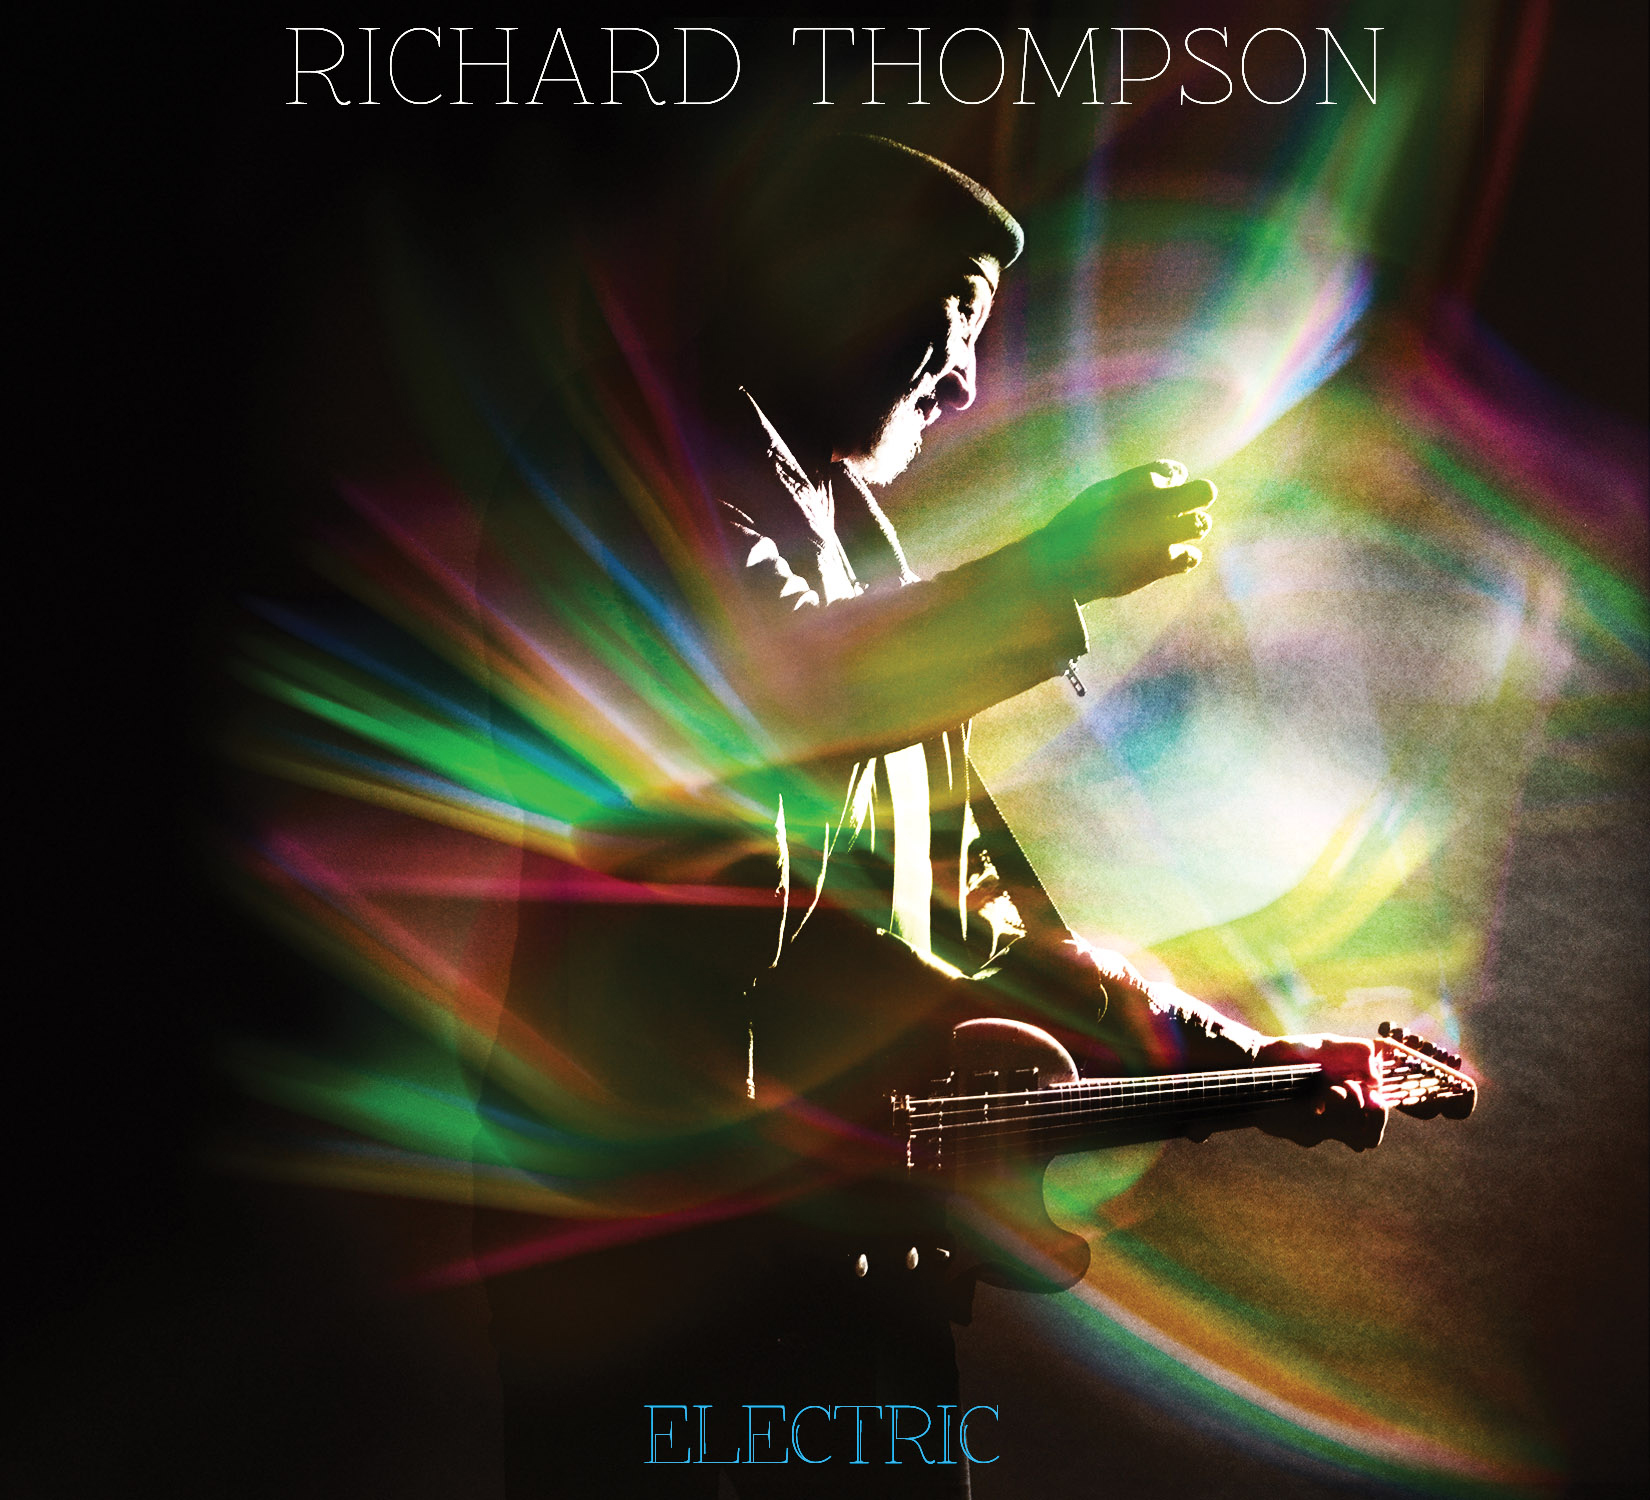 Richard Thompson's Electric enters UK album chart at No. 16